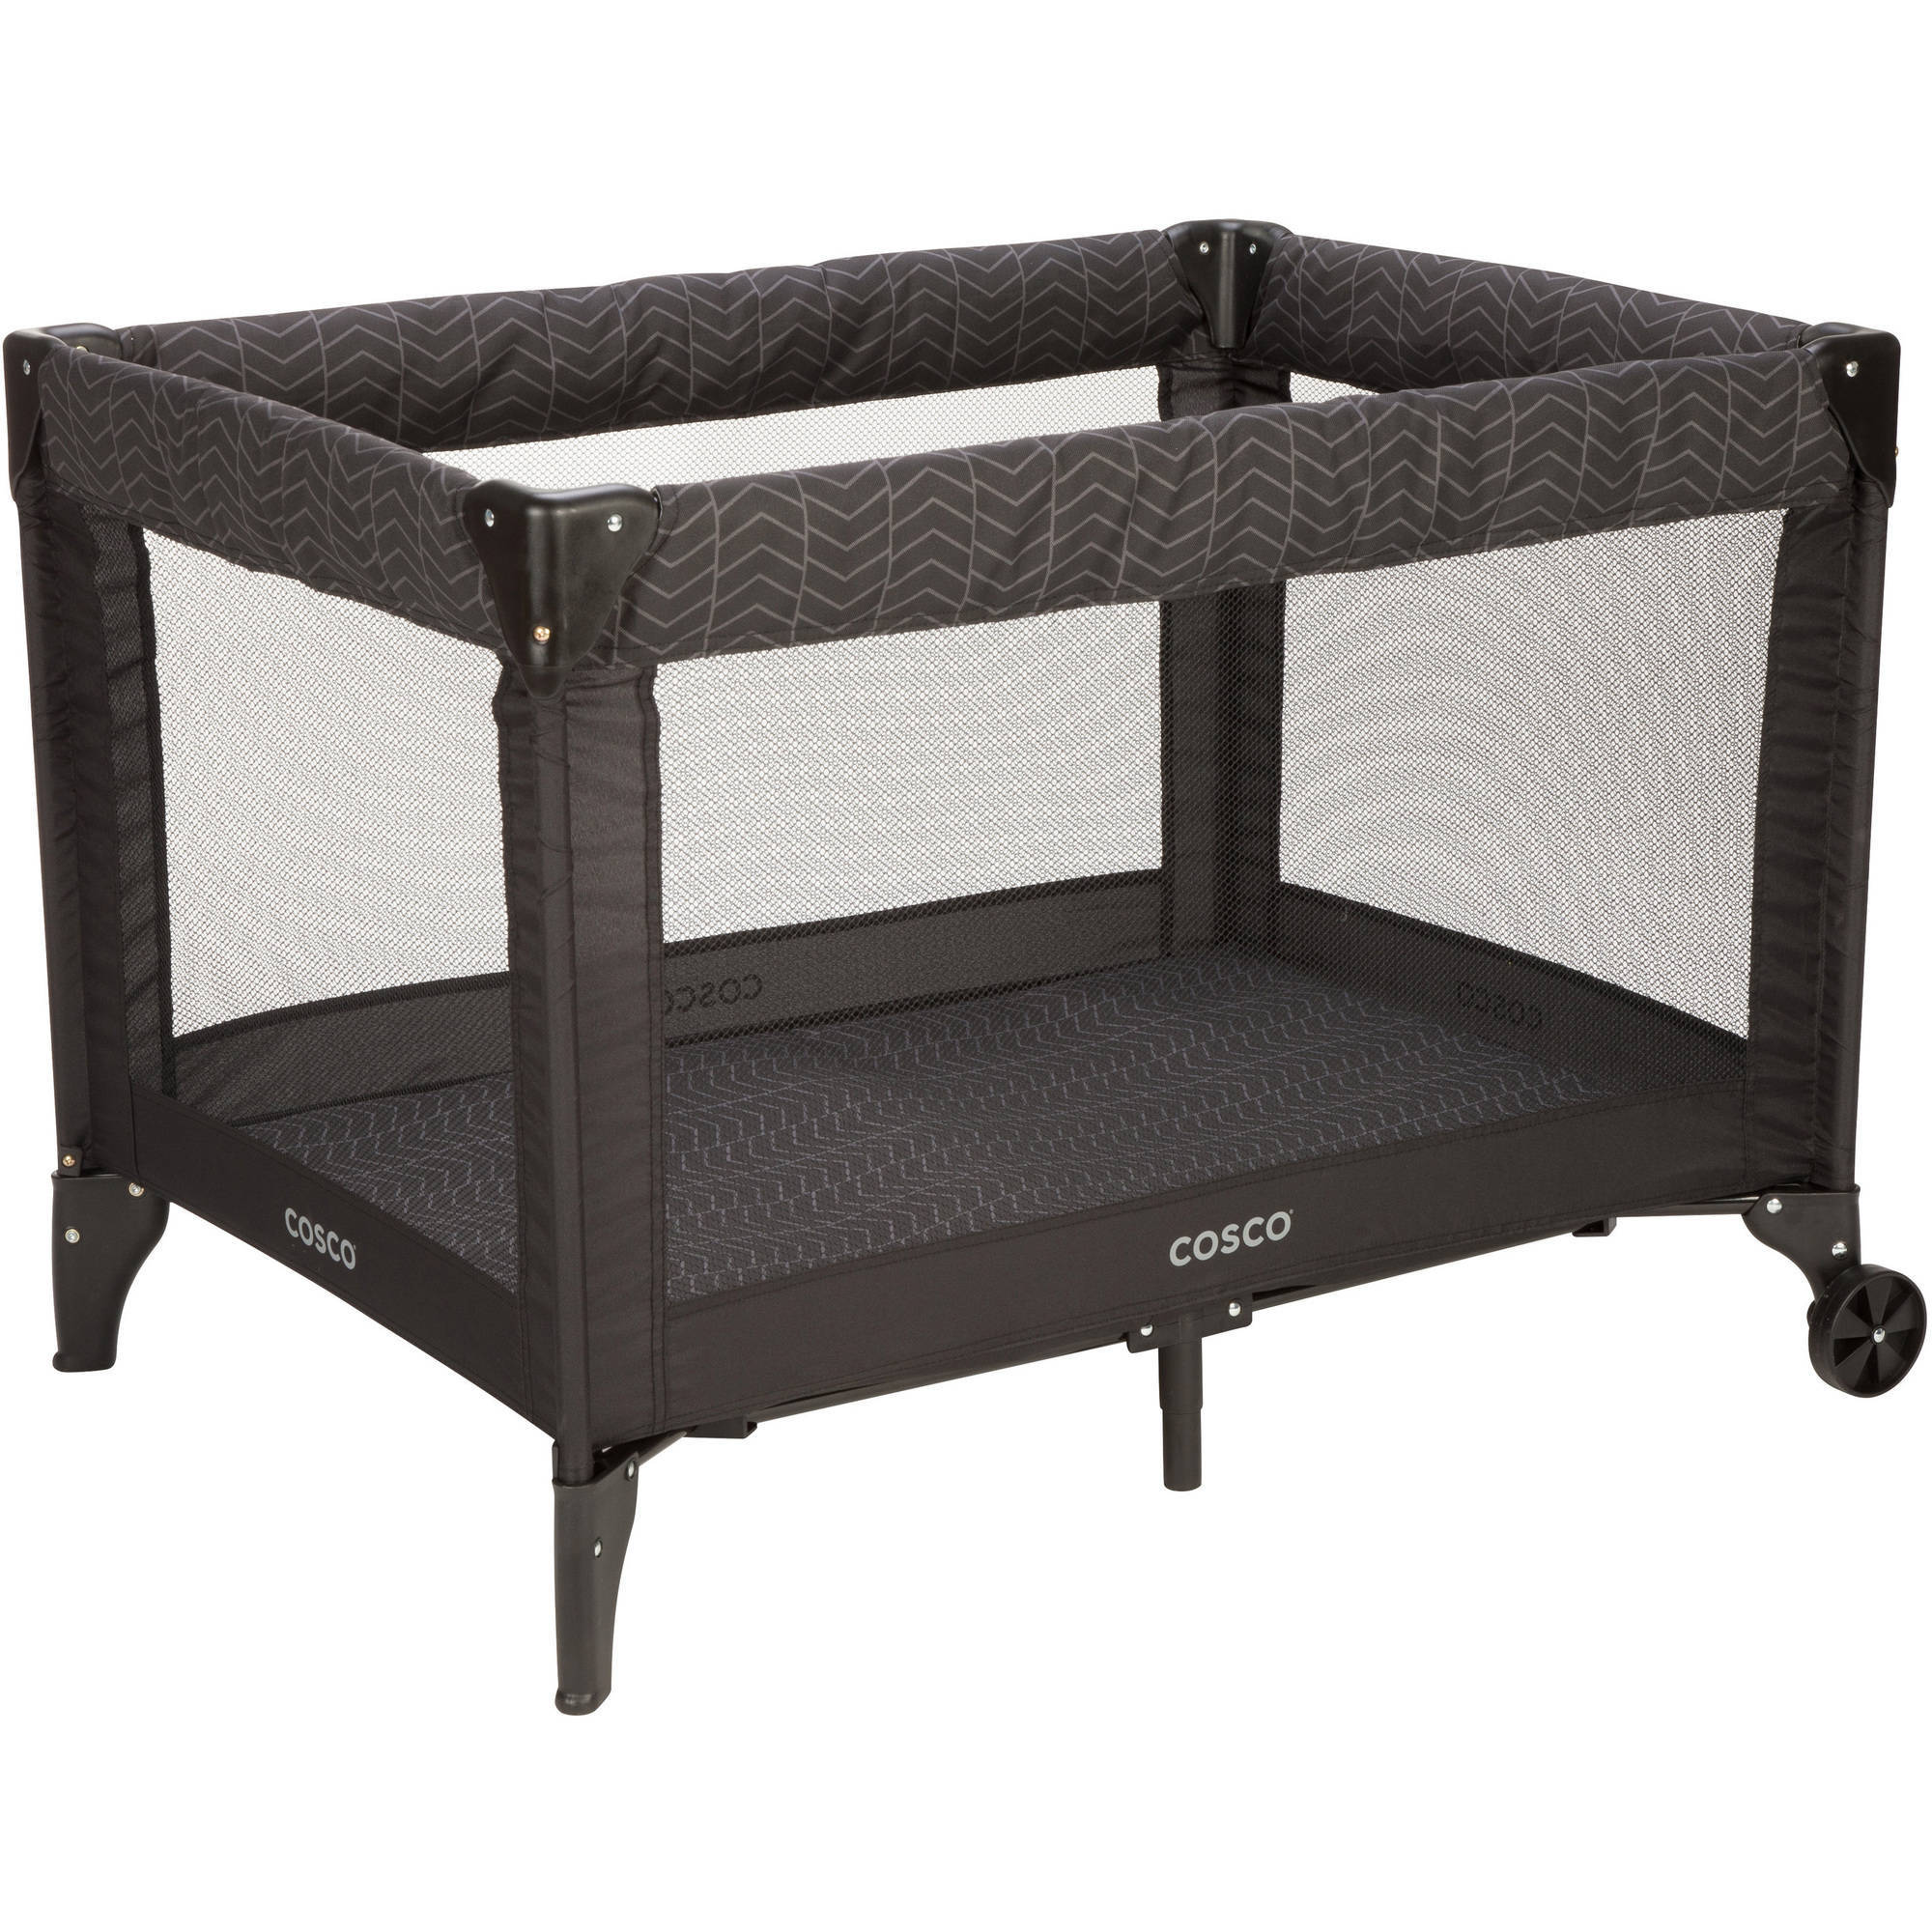 Cosco Deluxe Funsport Play Yard, Black Arrow